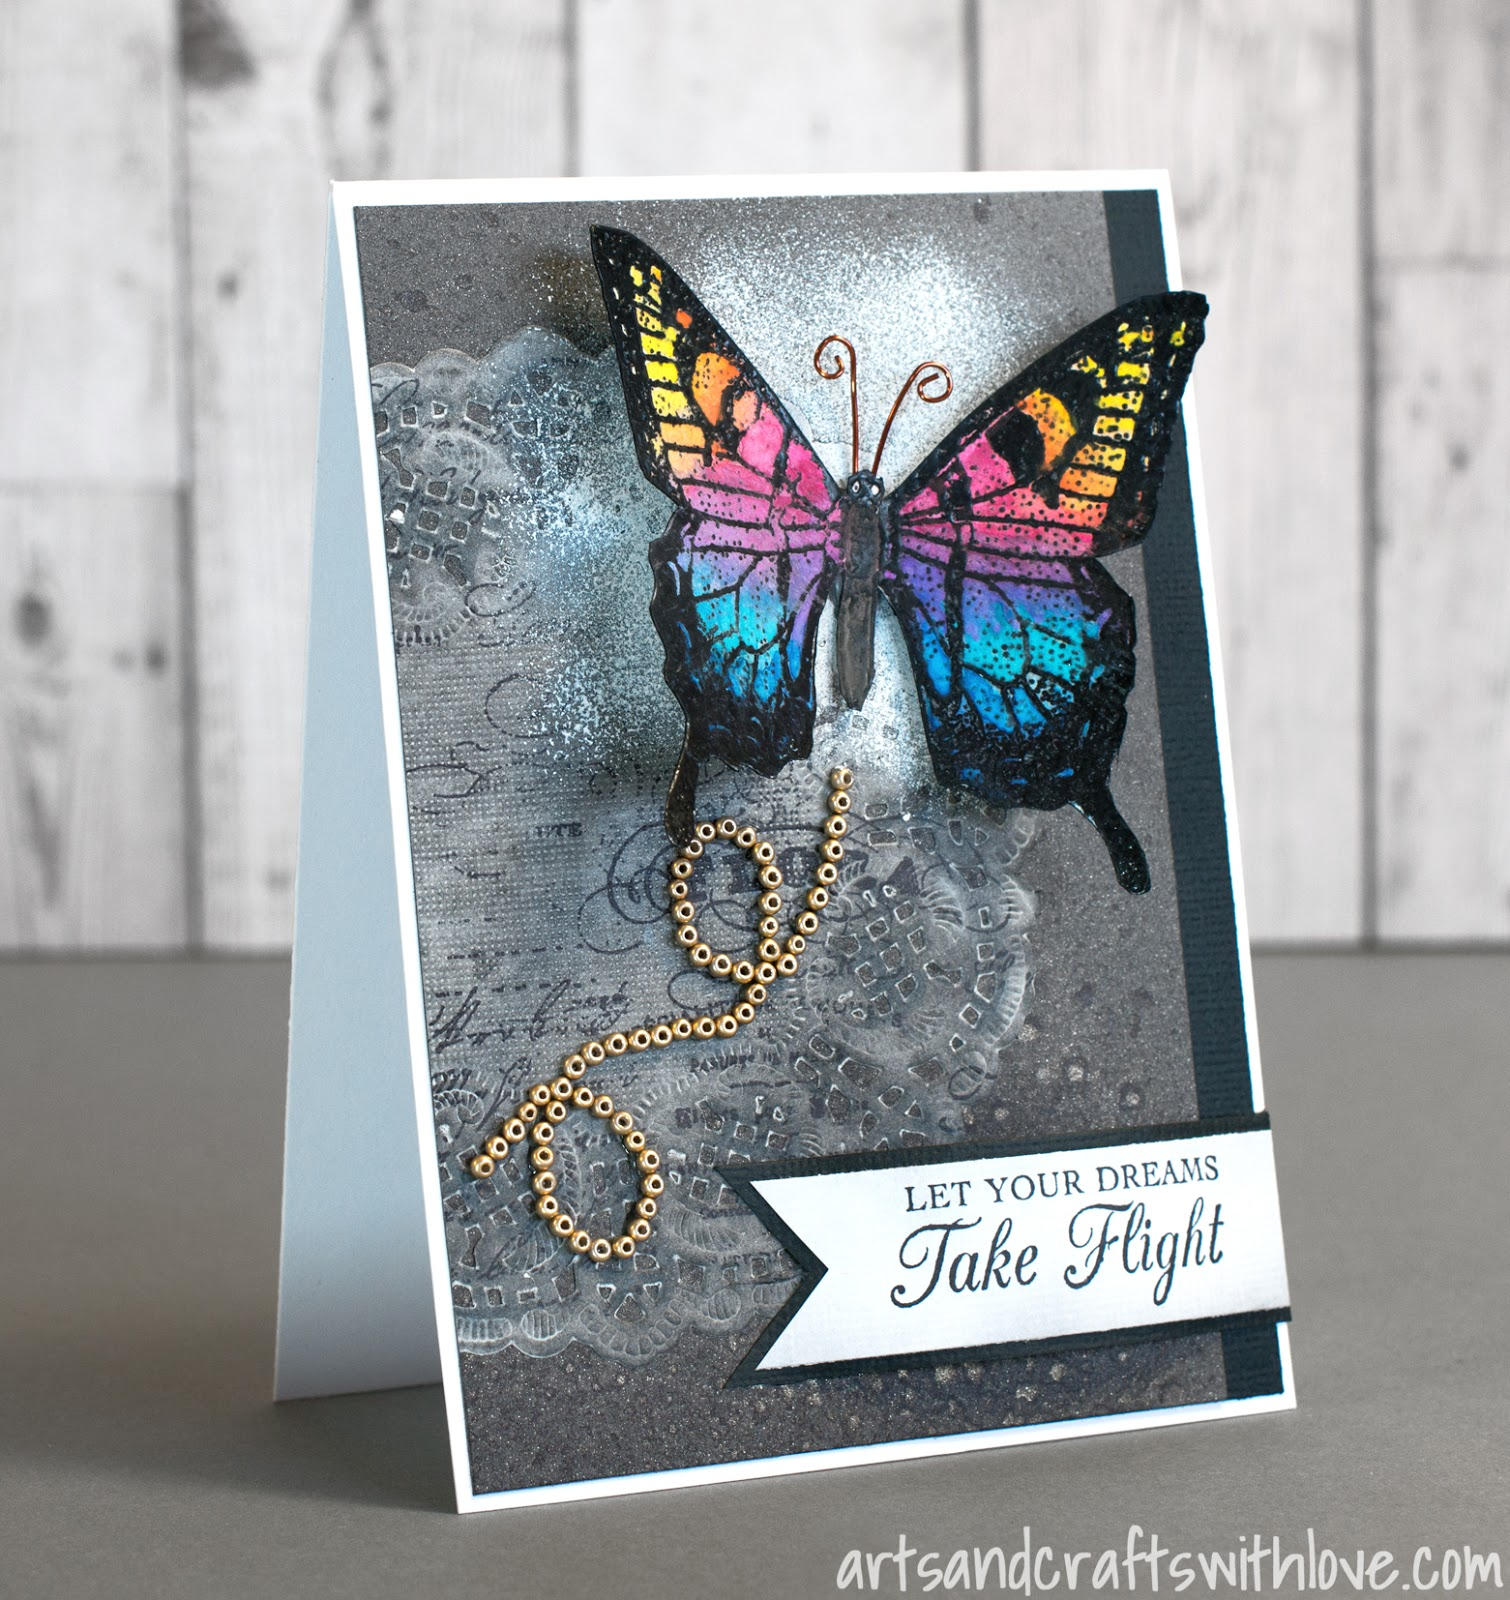 Cardmaking: Let Your Dreams Take Flight